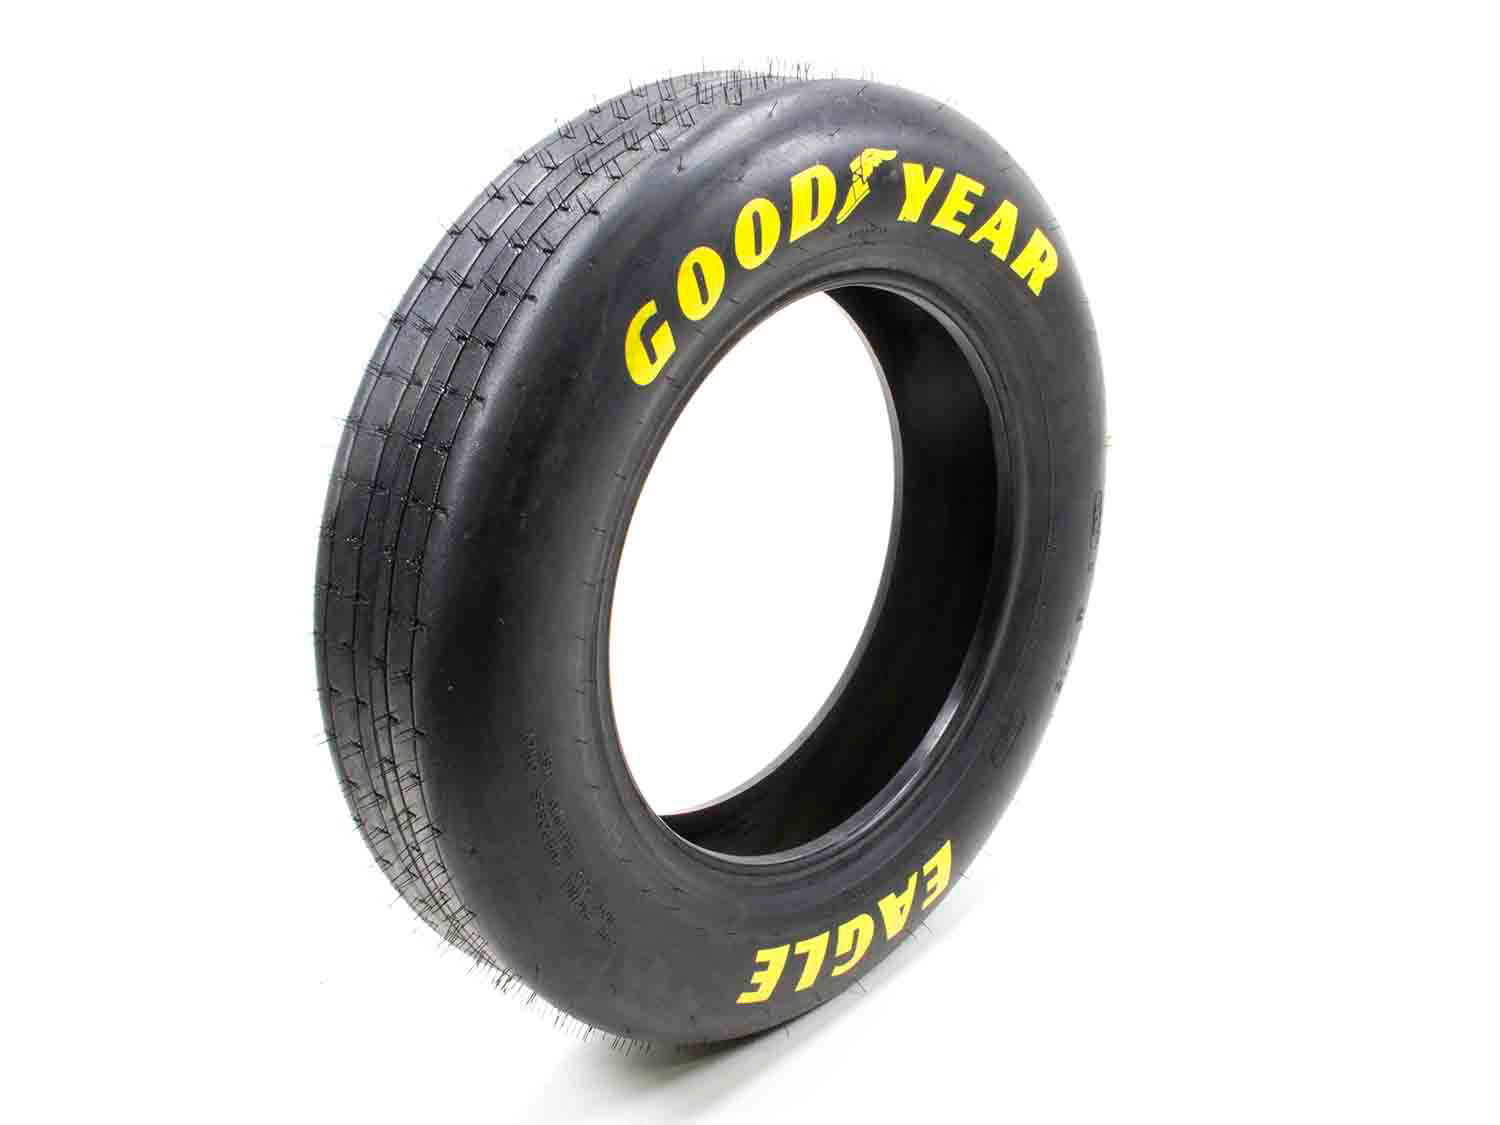 Goodyear D1964 Tire, Drag Front, Front Runner, 26.0 x 4.5-15, Bias Ply, Hard Compound, Yellow Letter Sidewall, Each